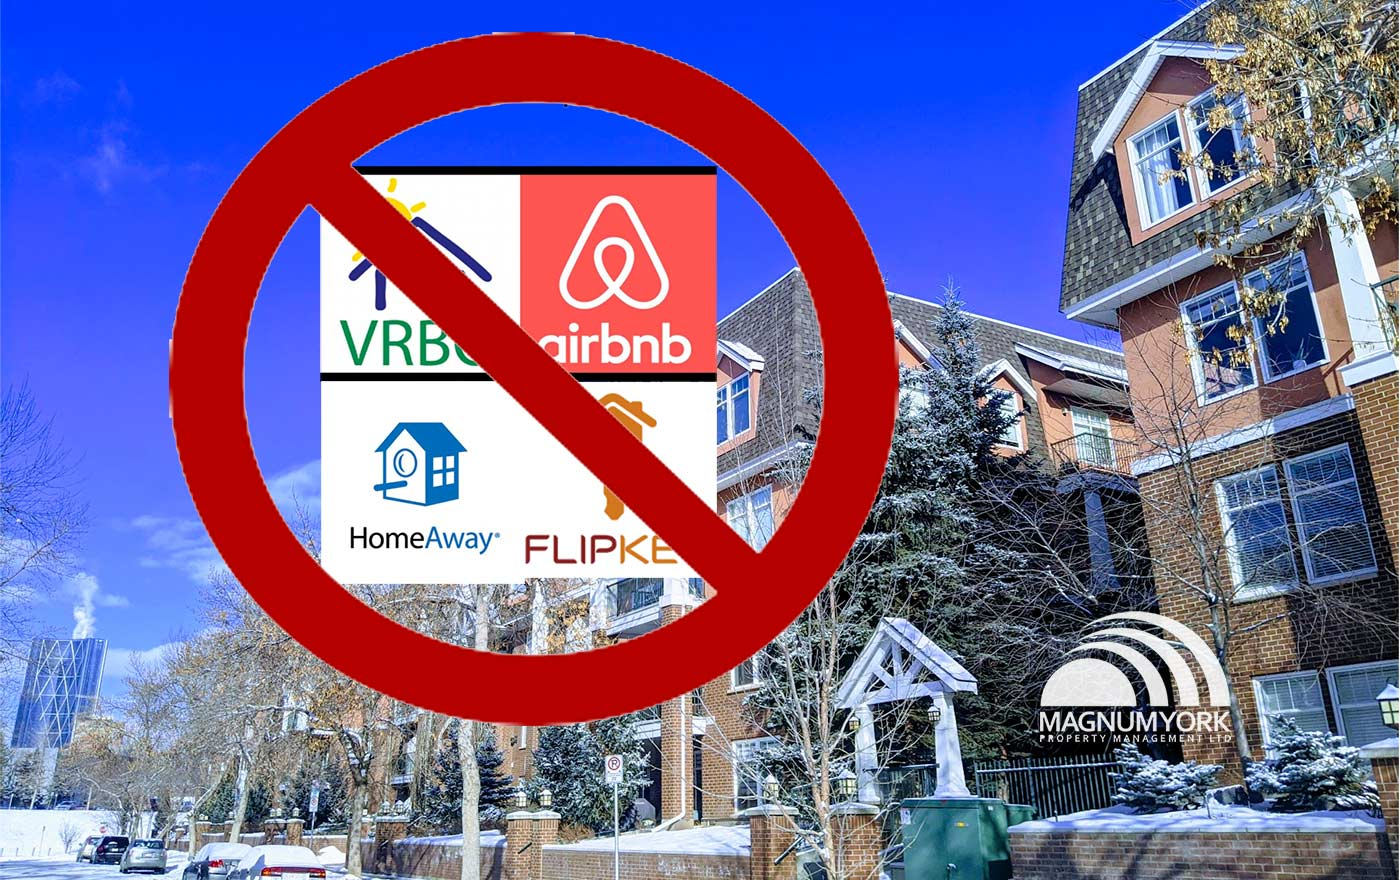 Magnum York Alberta Judge Bans AirBnB VRBO Condominiums